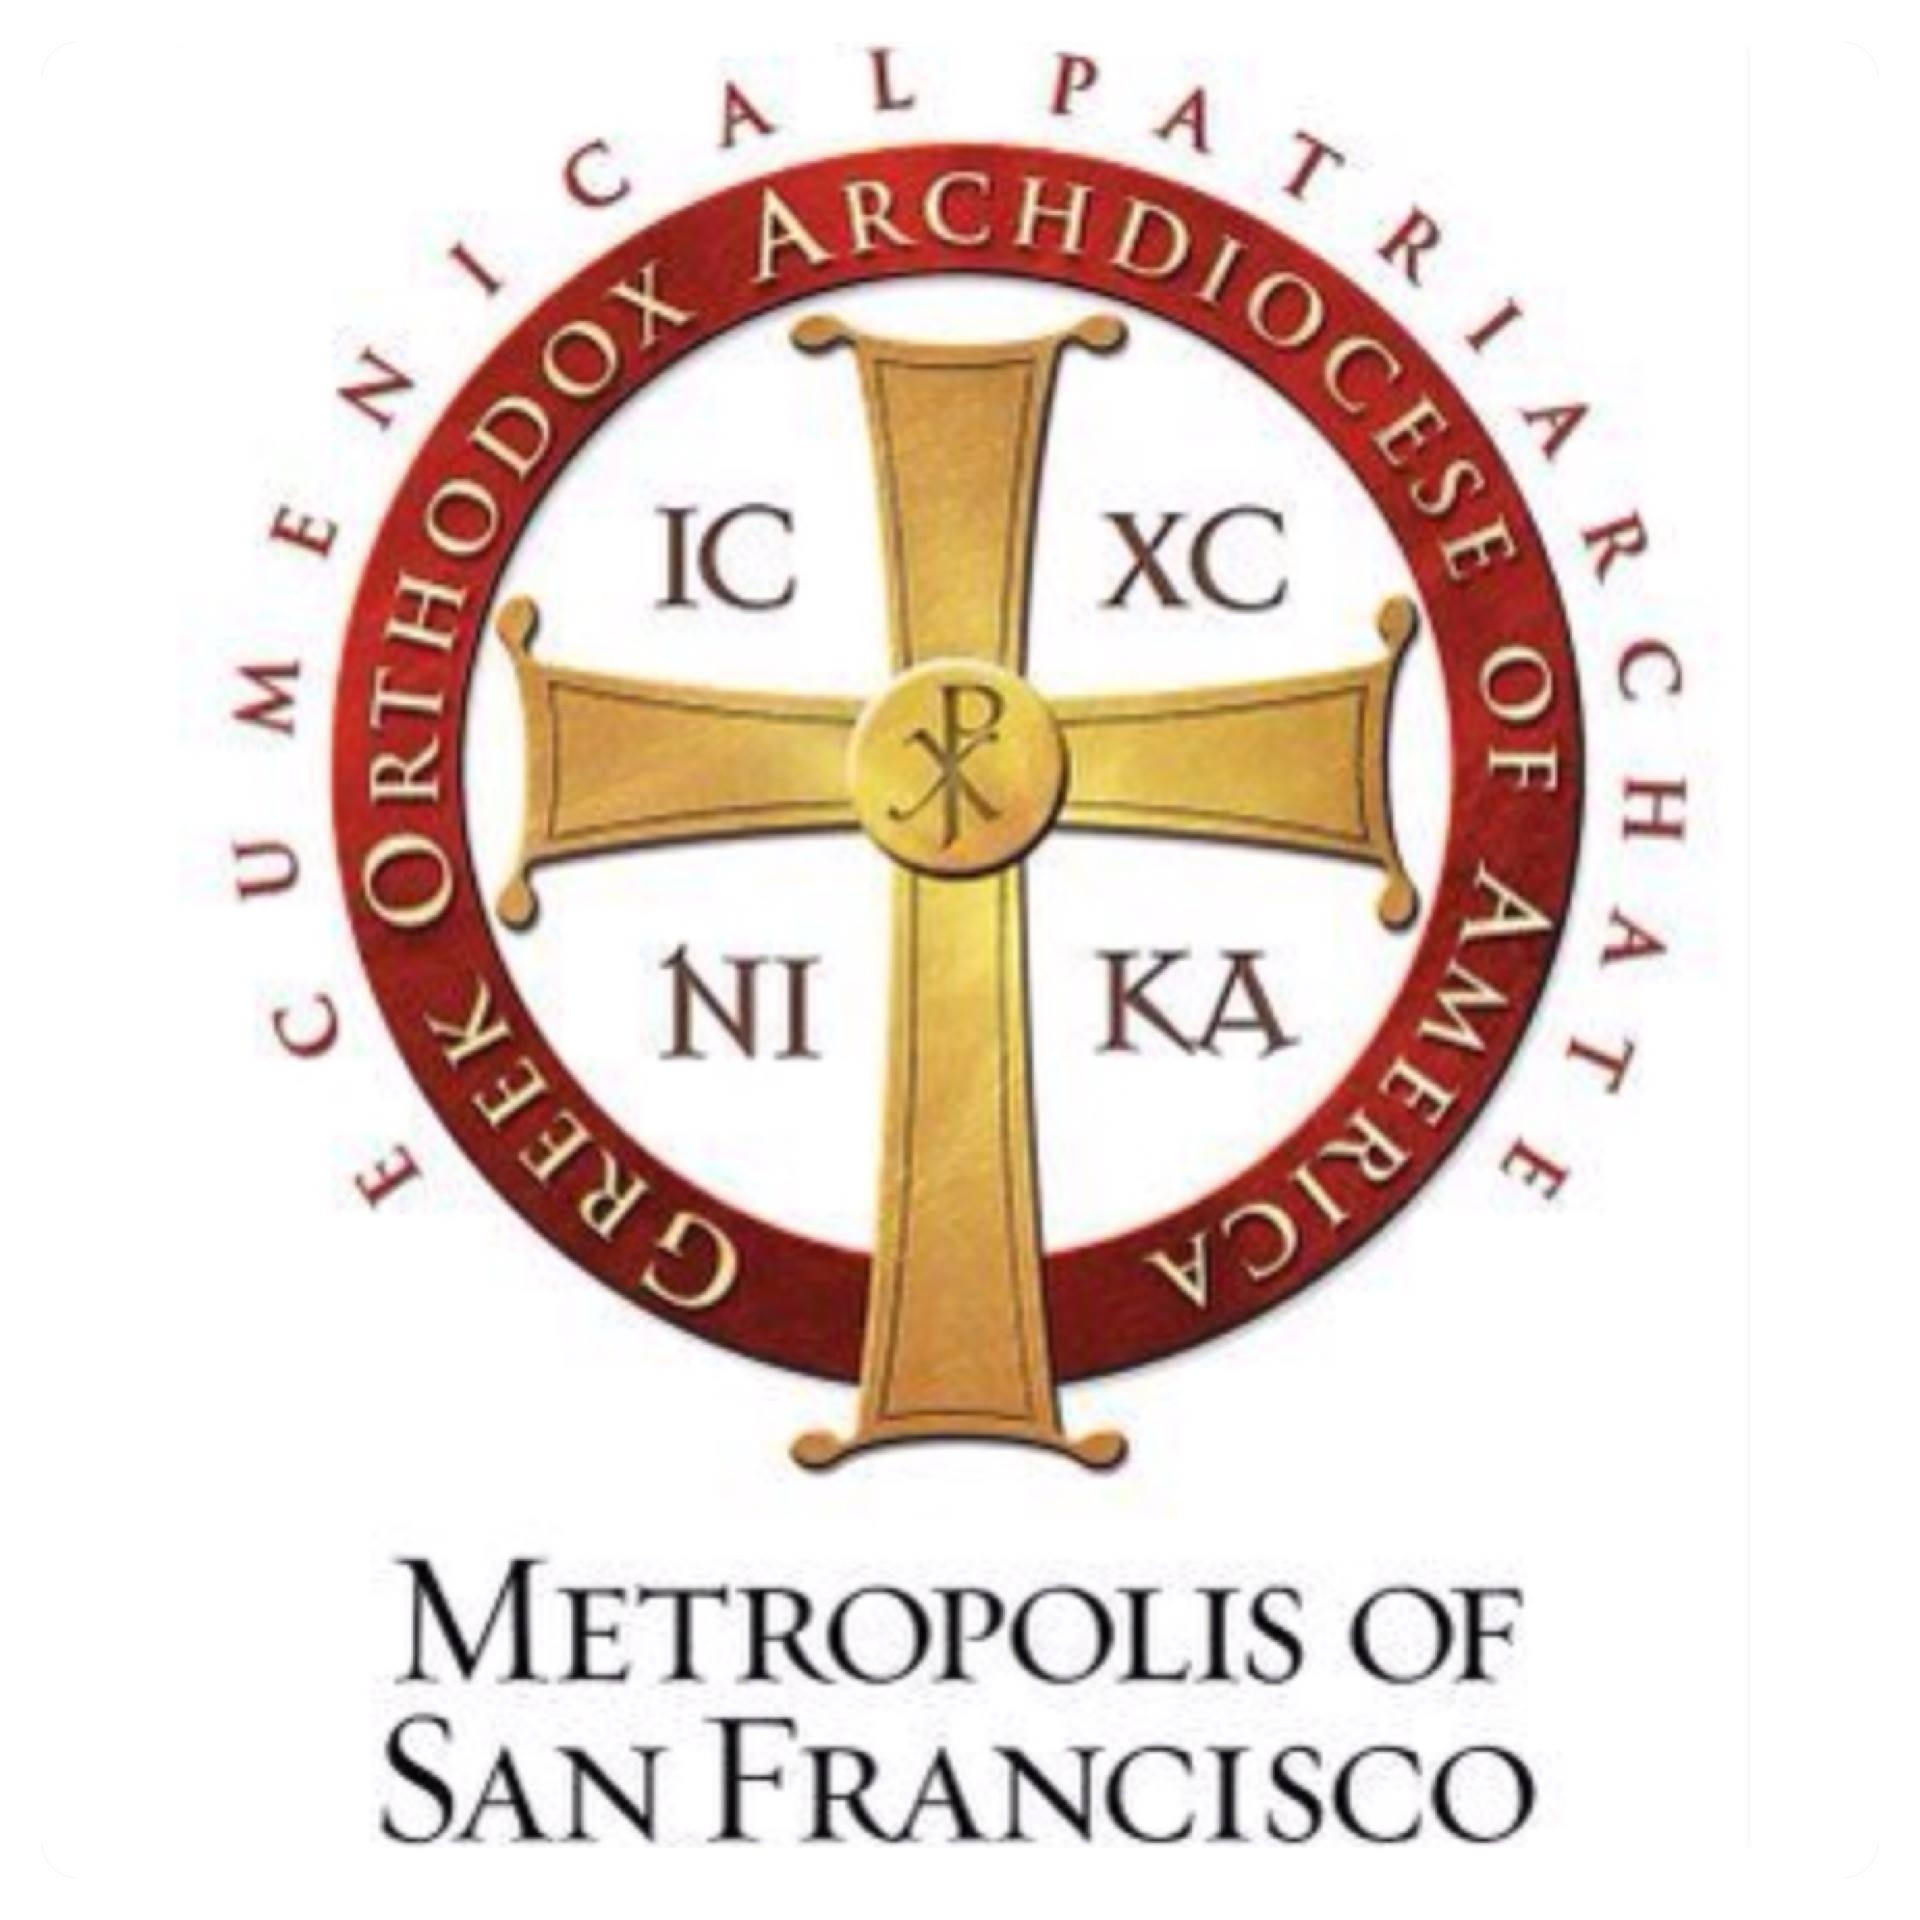 Visit the official website of the Greek Orthodox Metropolis of San Francisco